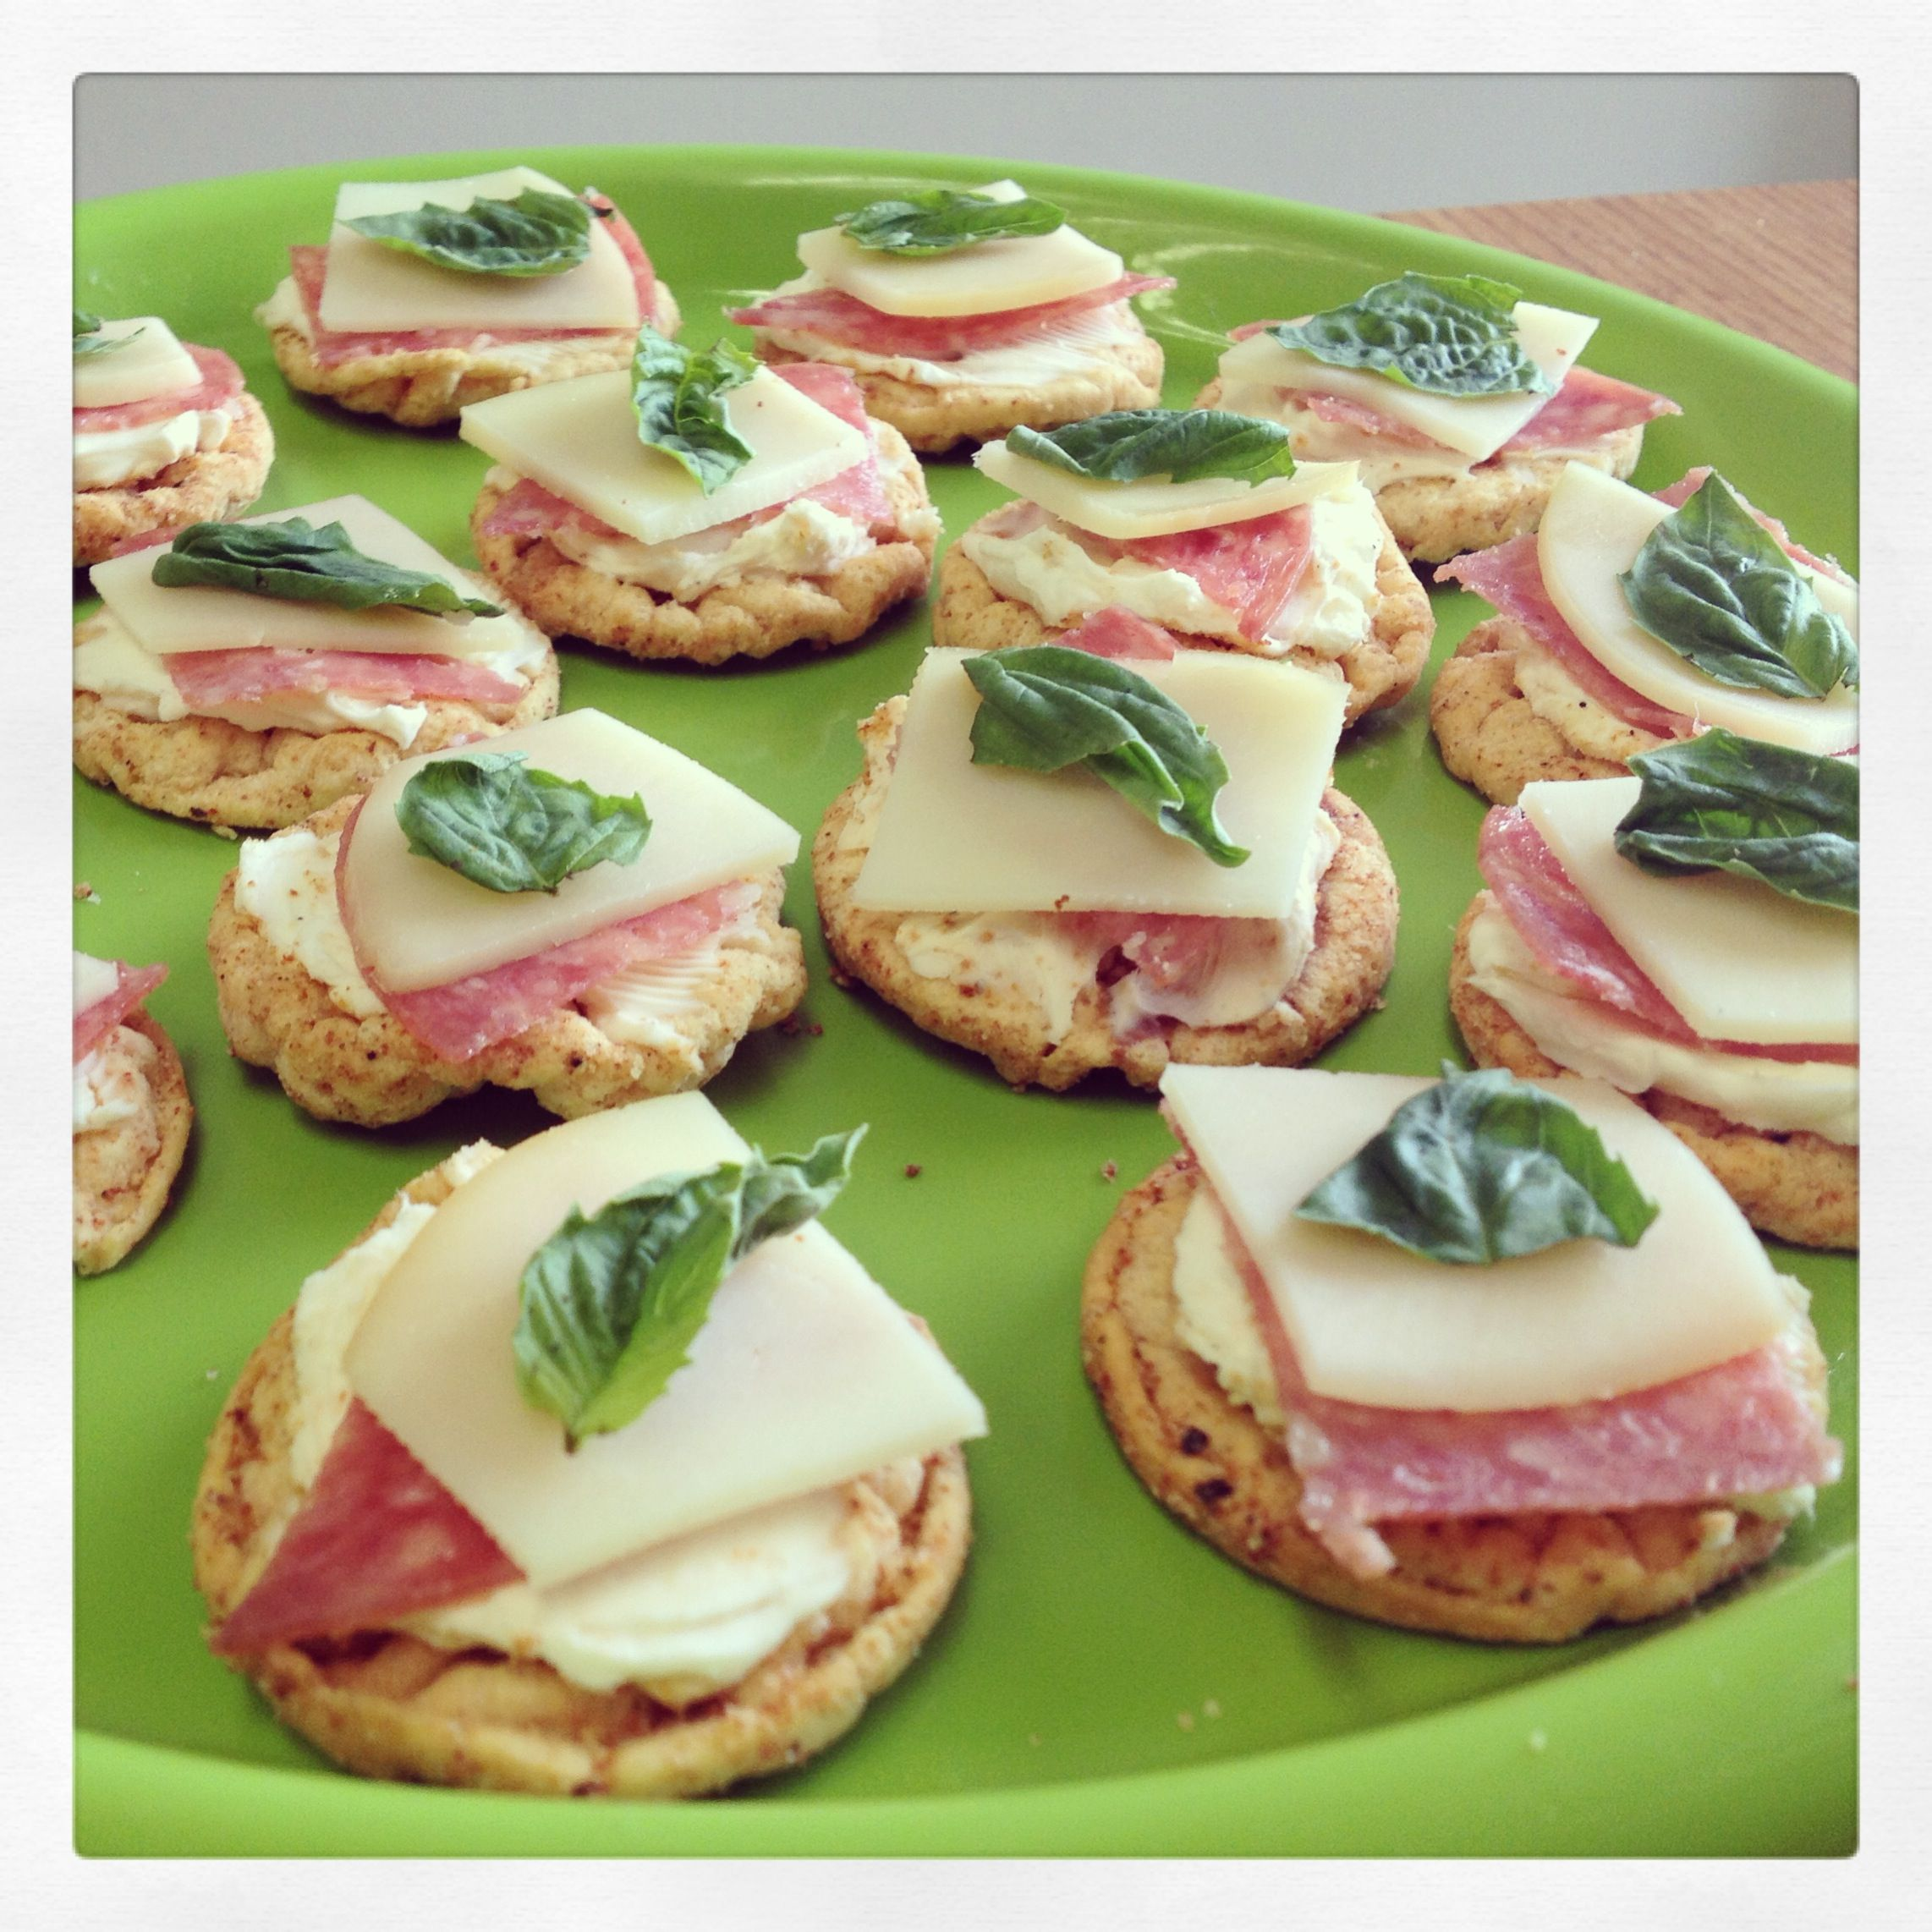 No Spike Italian Bites, these antipasto-style snack bites are rich and savory...and as the name suggests, they won't spike blood sugar levels. A great diabetic snack! http://www.extendbar.com/blog/no-spike-italian-bites-recipe/